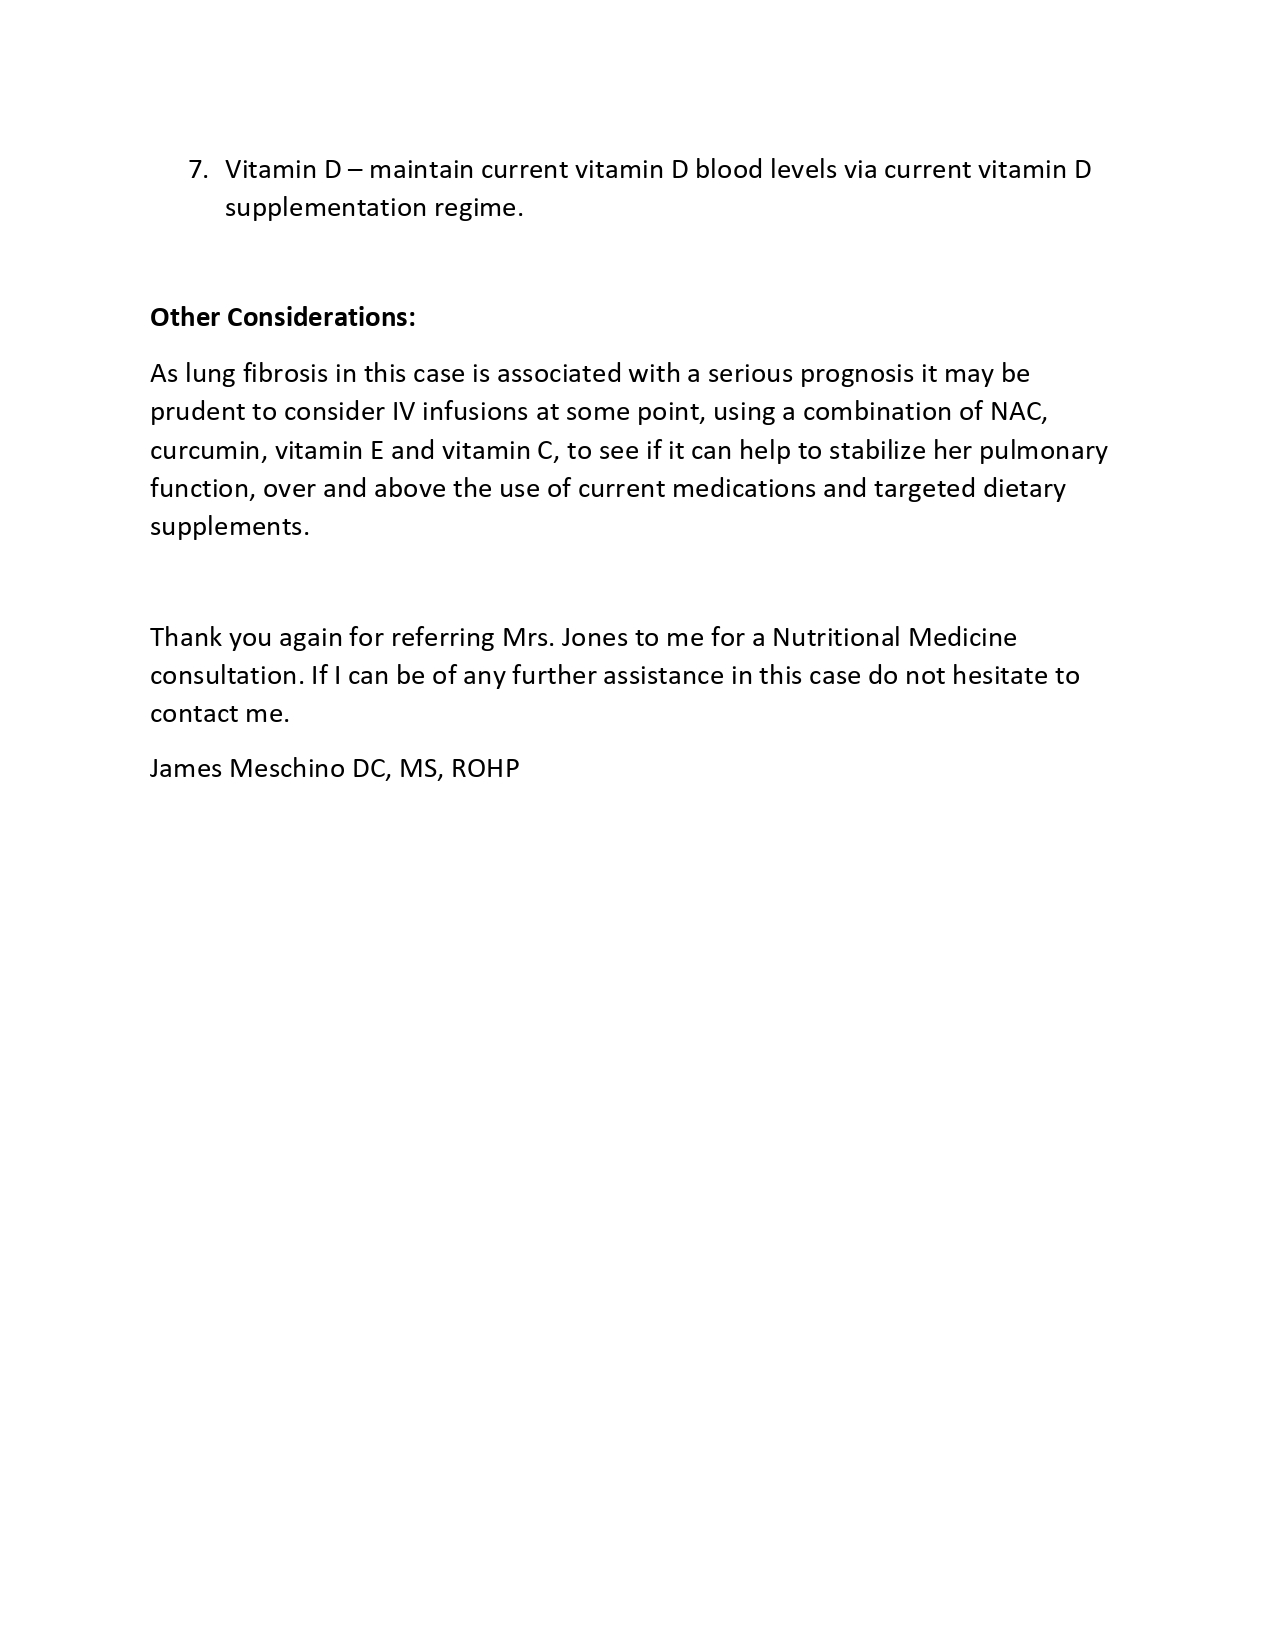 Physician-ReportDate-1-1_pages-to-jpg-0006